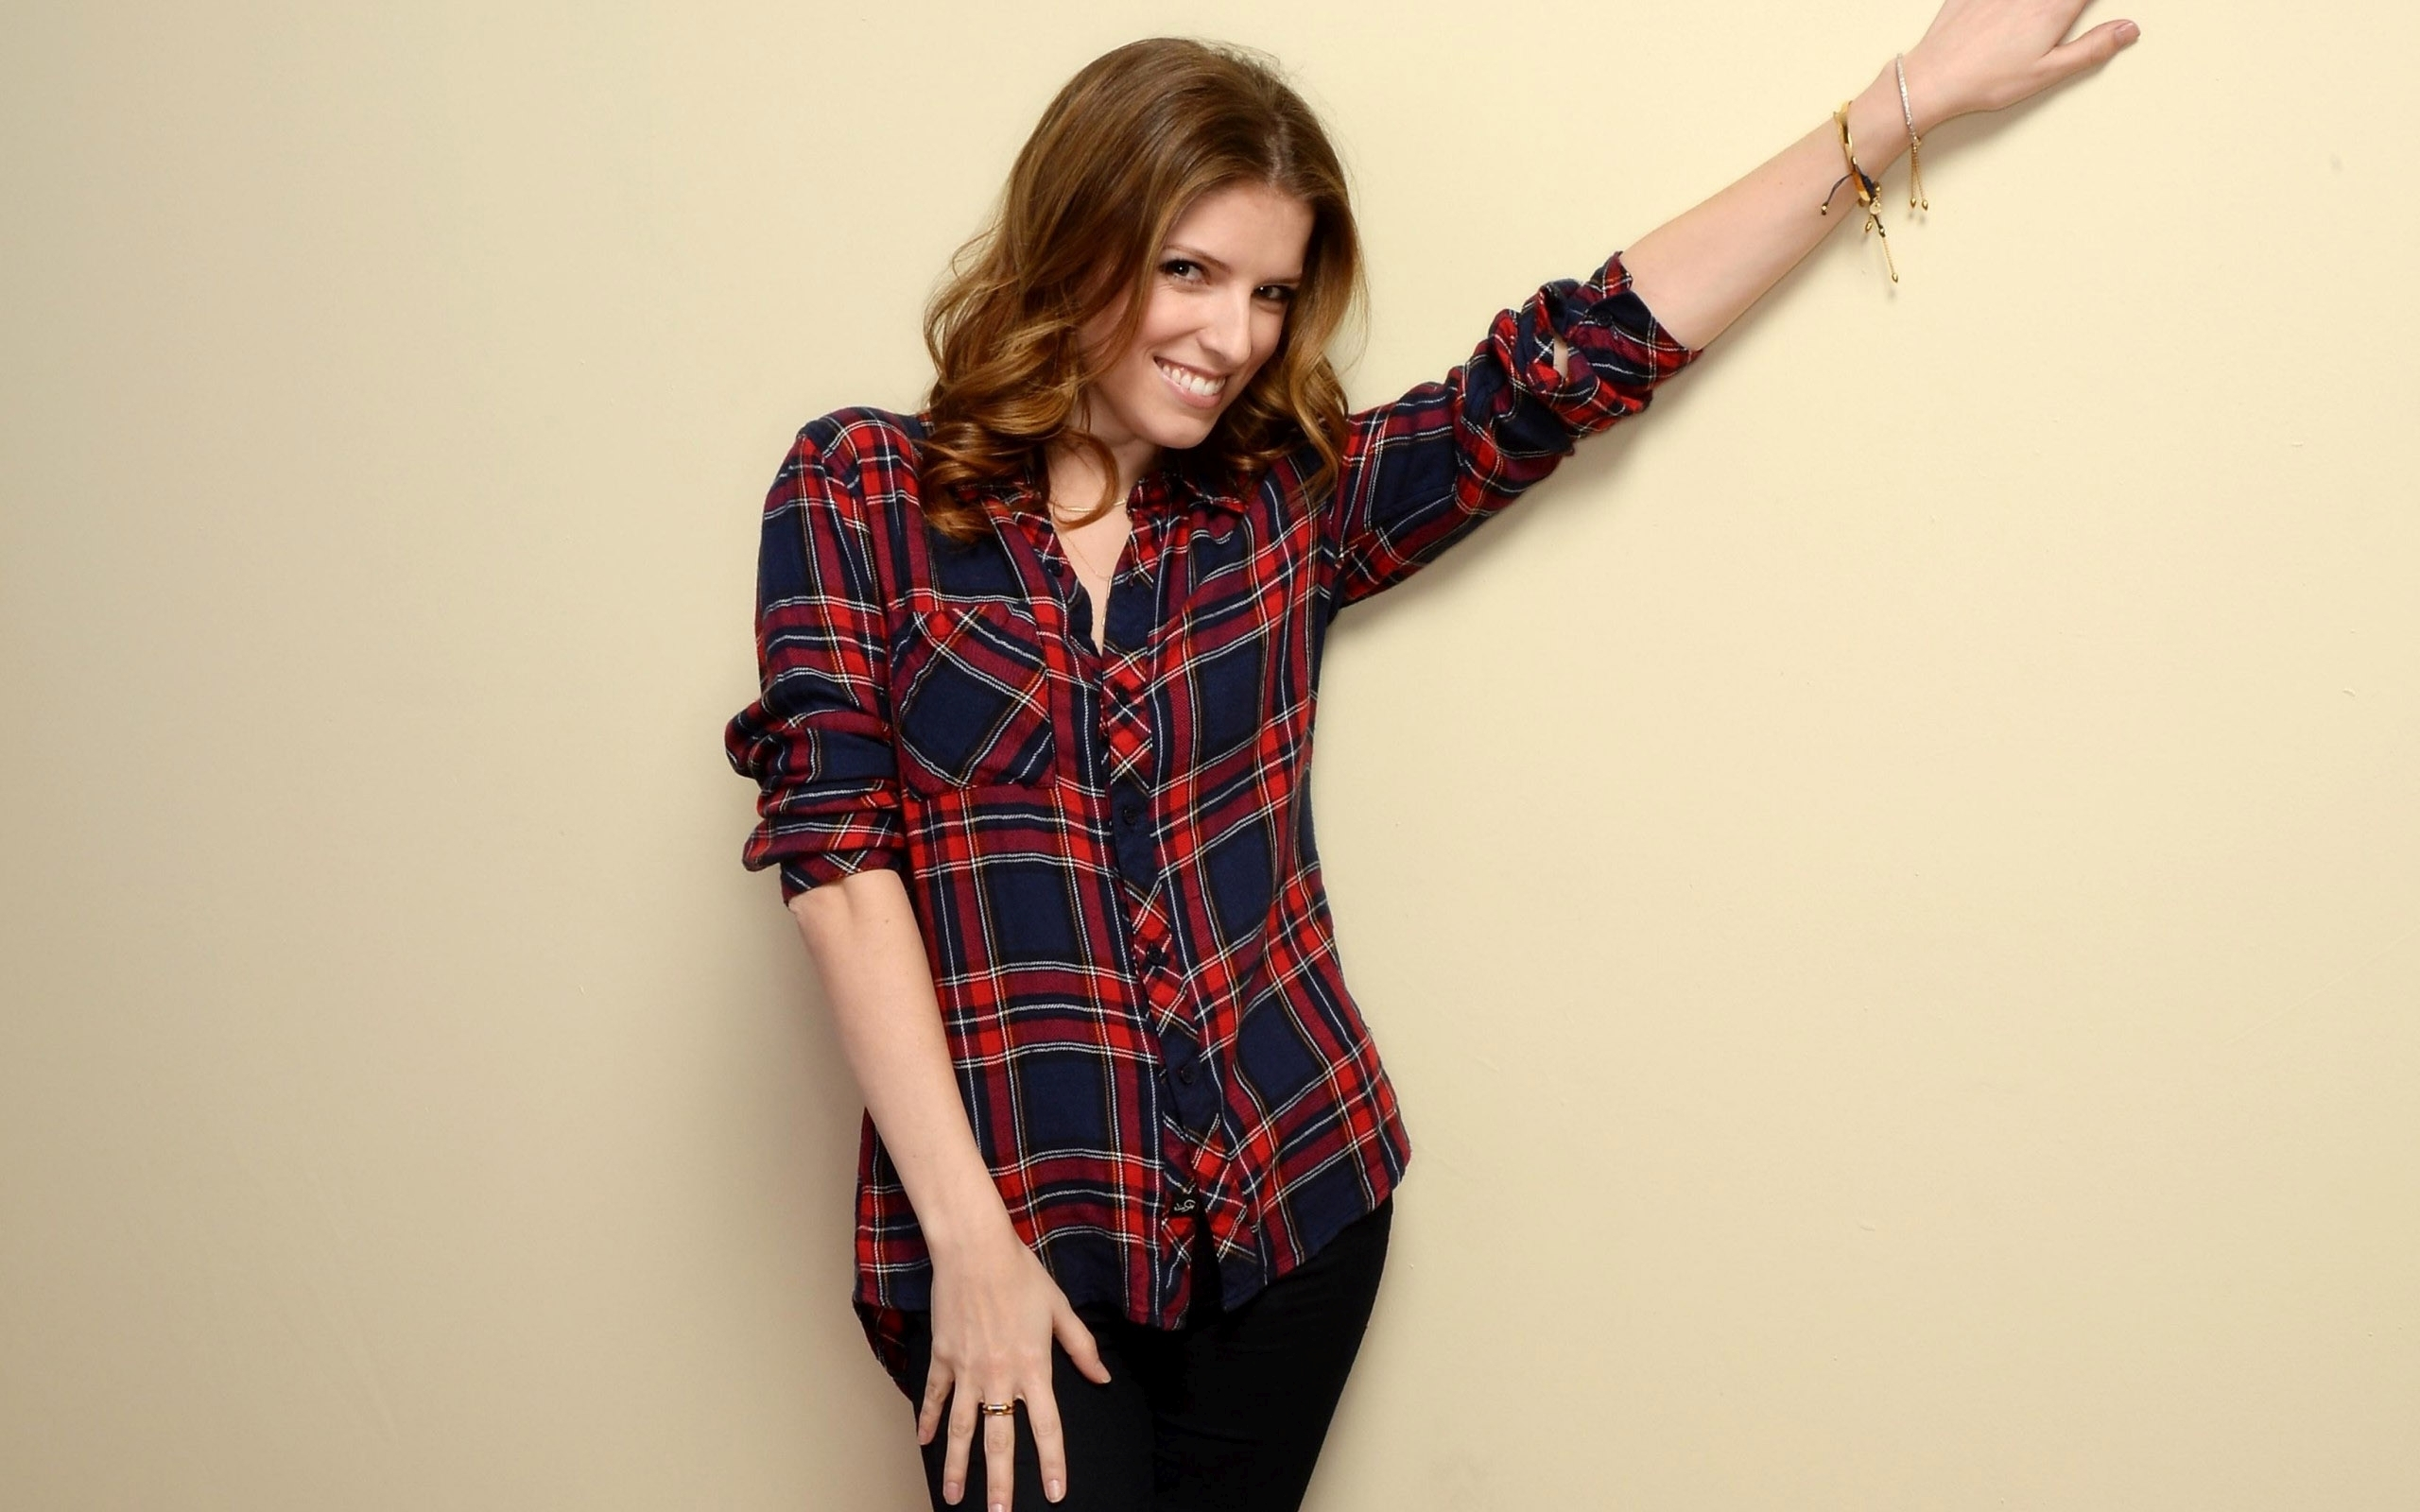 Pretty Girl Wallpaper Free Download Anna Kendrick Wallpapers High Resolution And Quality Download